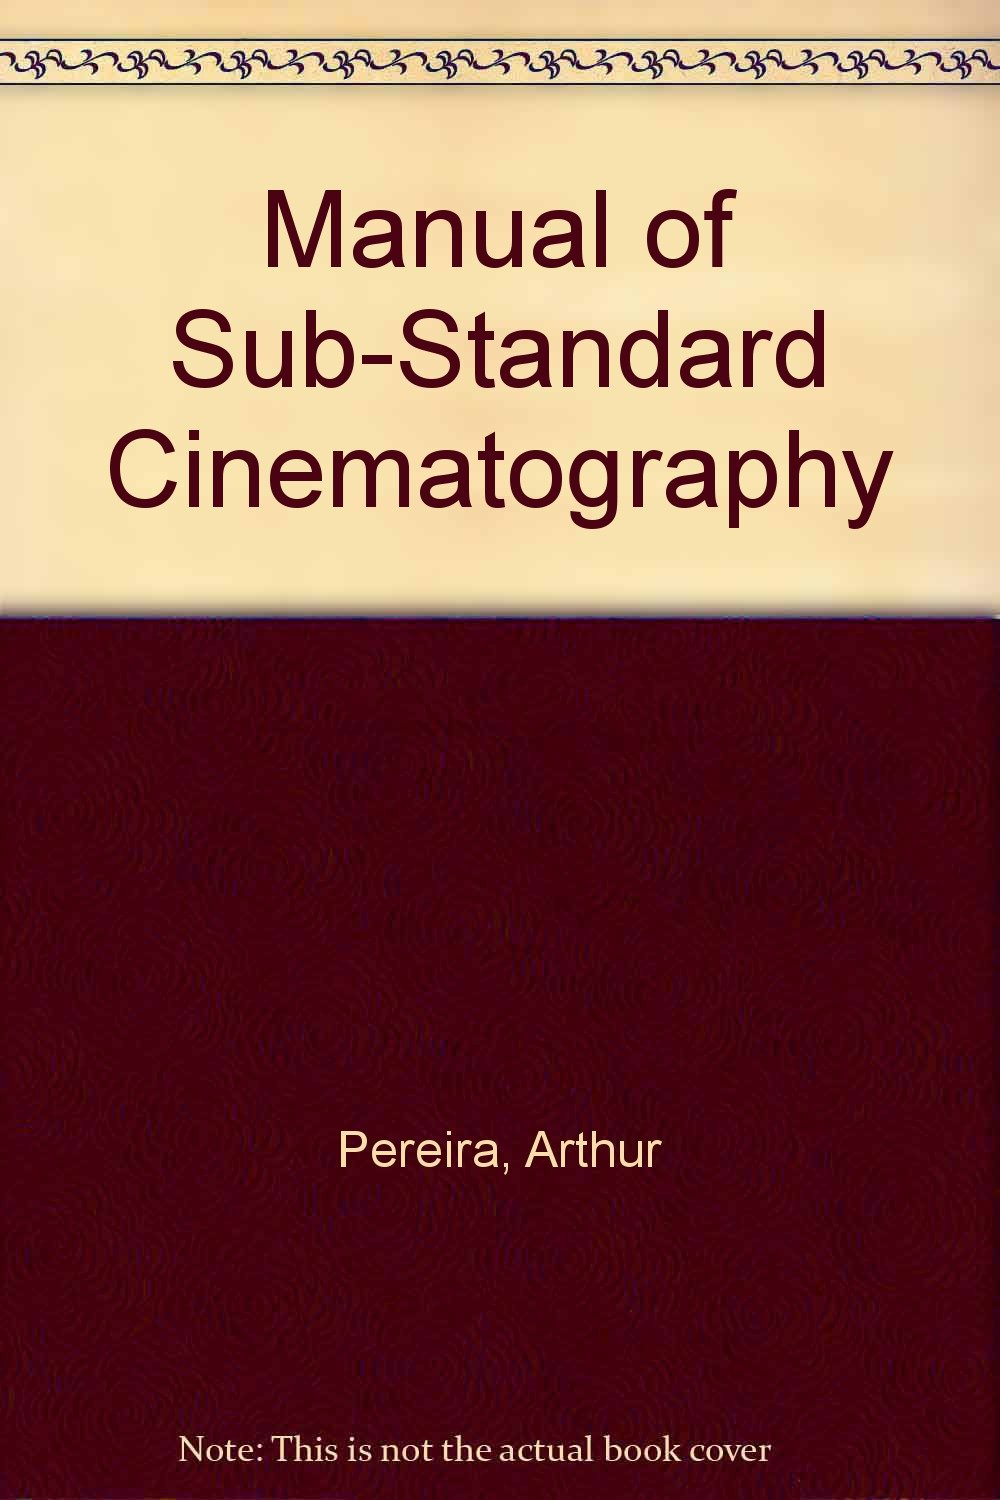 Manual of Sub-Standard Cinematography